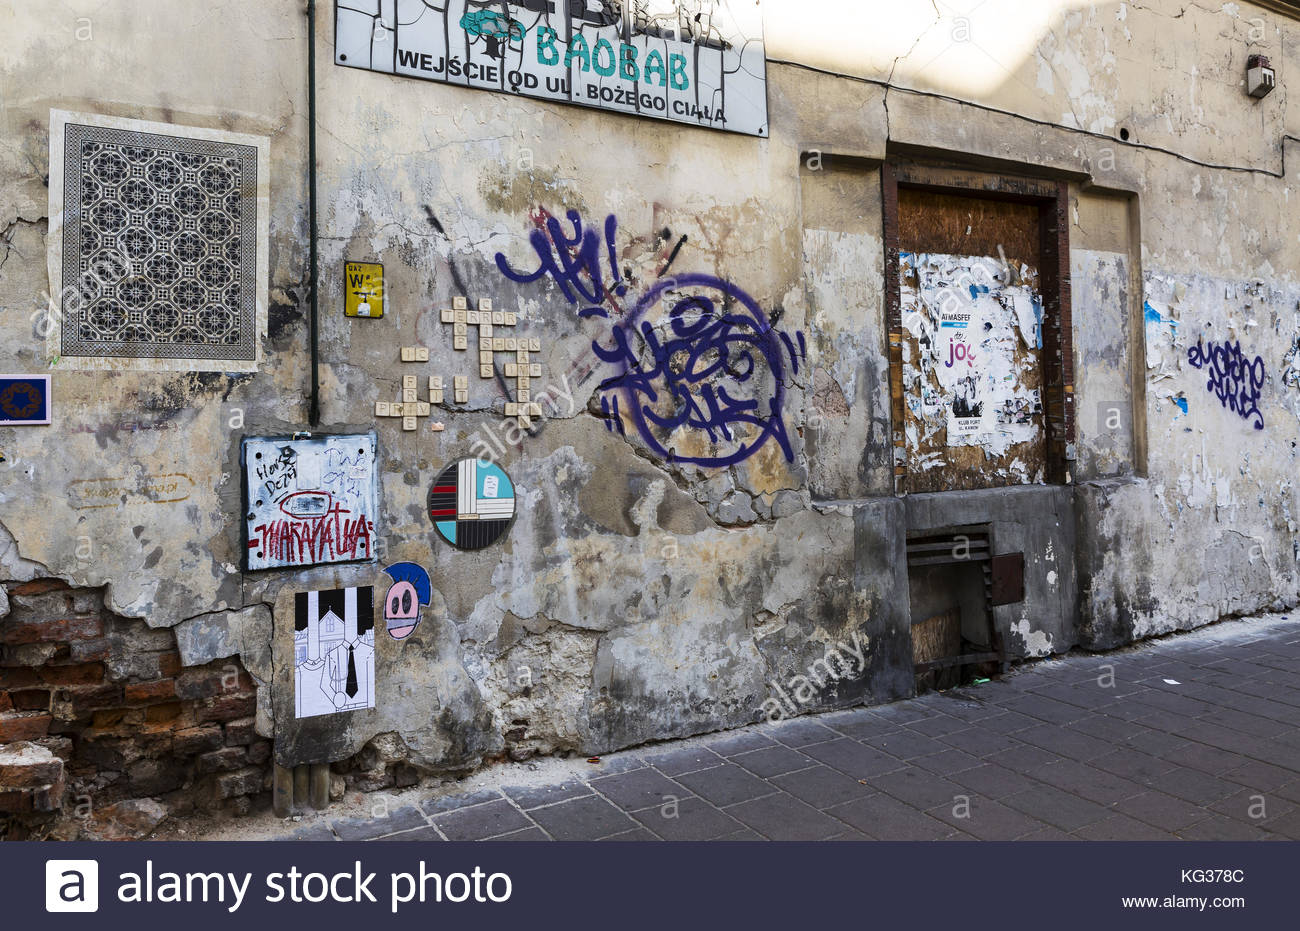 Unattributed wall art on the decaying wall of a building in the artist area of Krakow - Stock Image